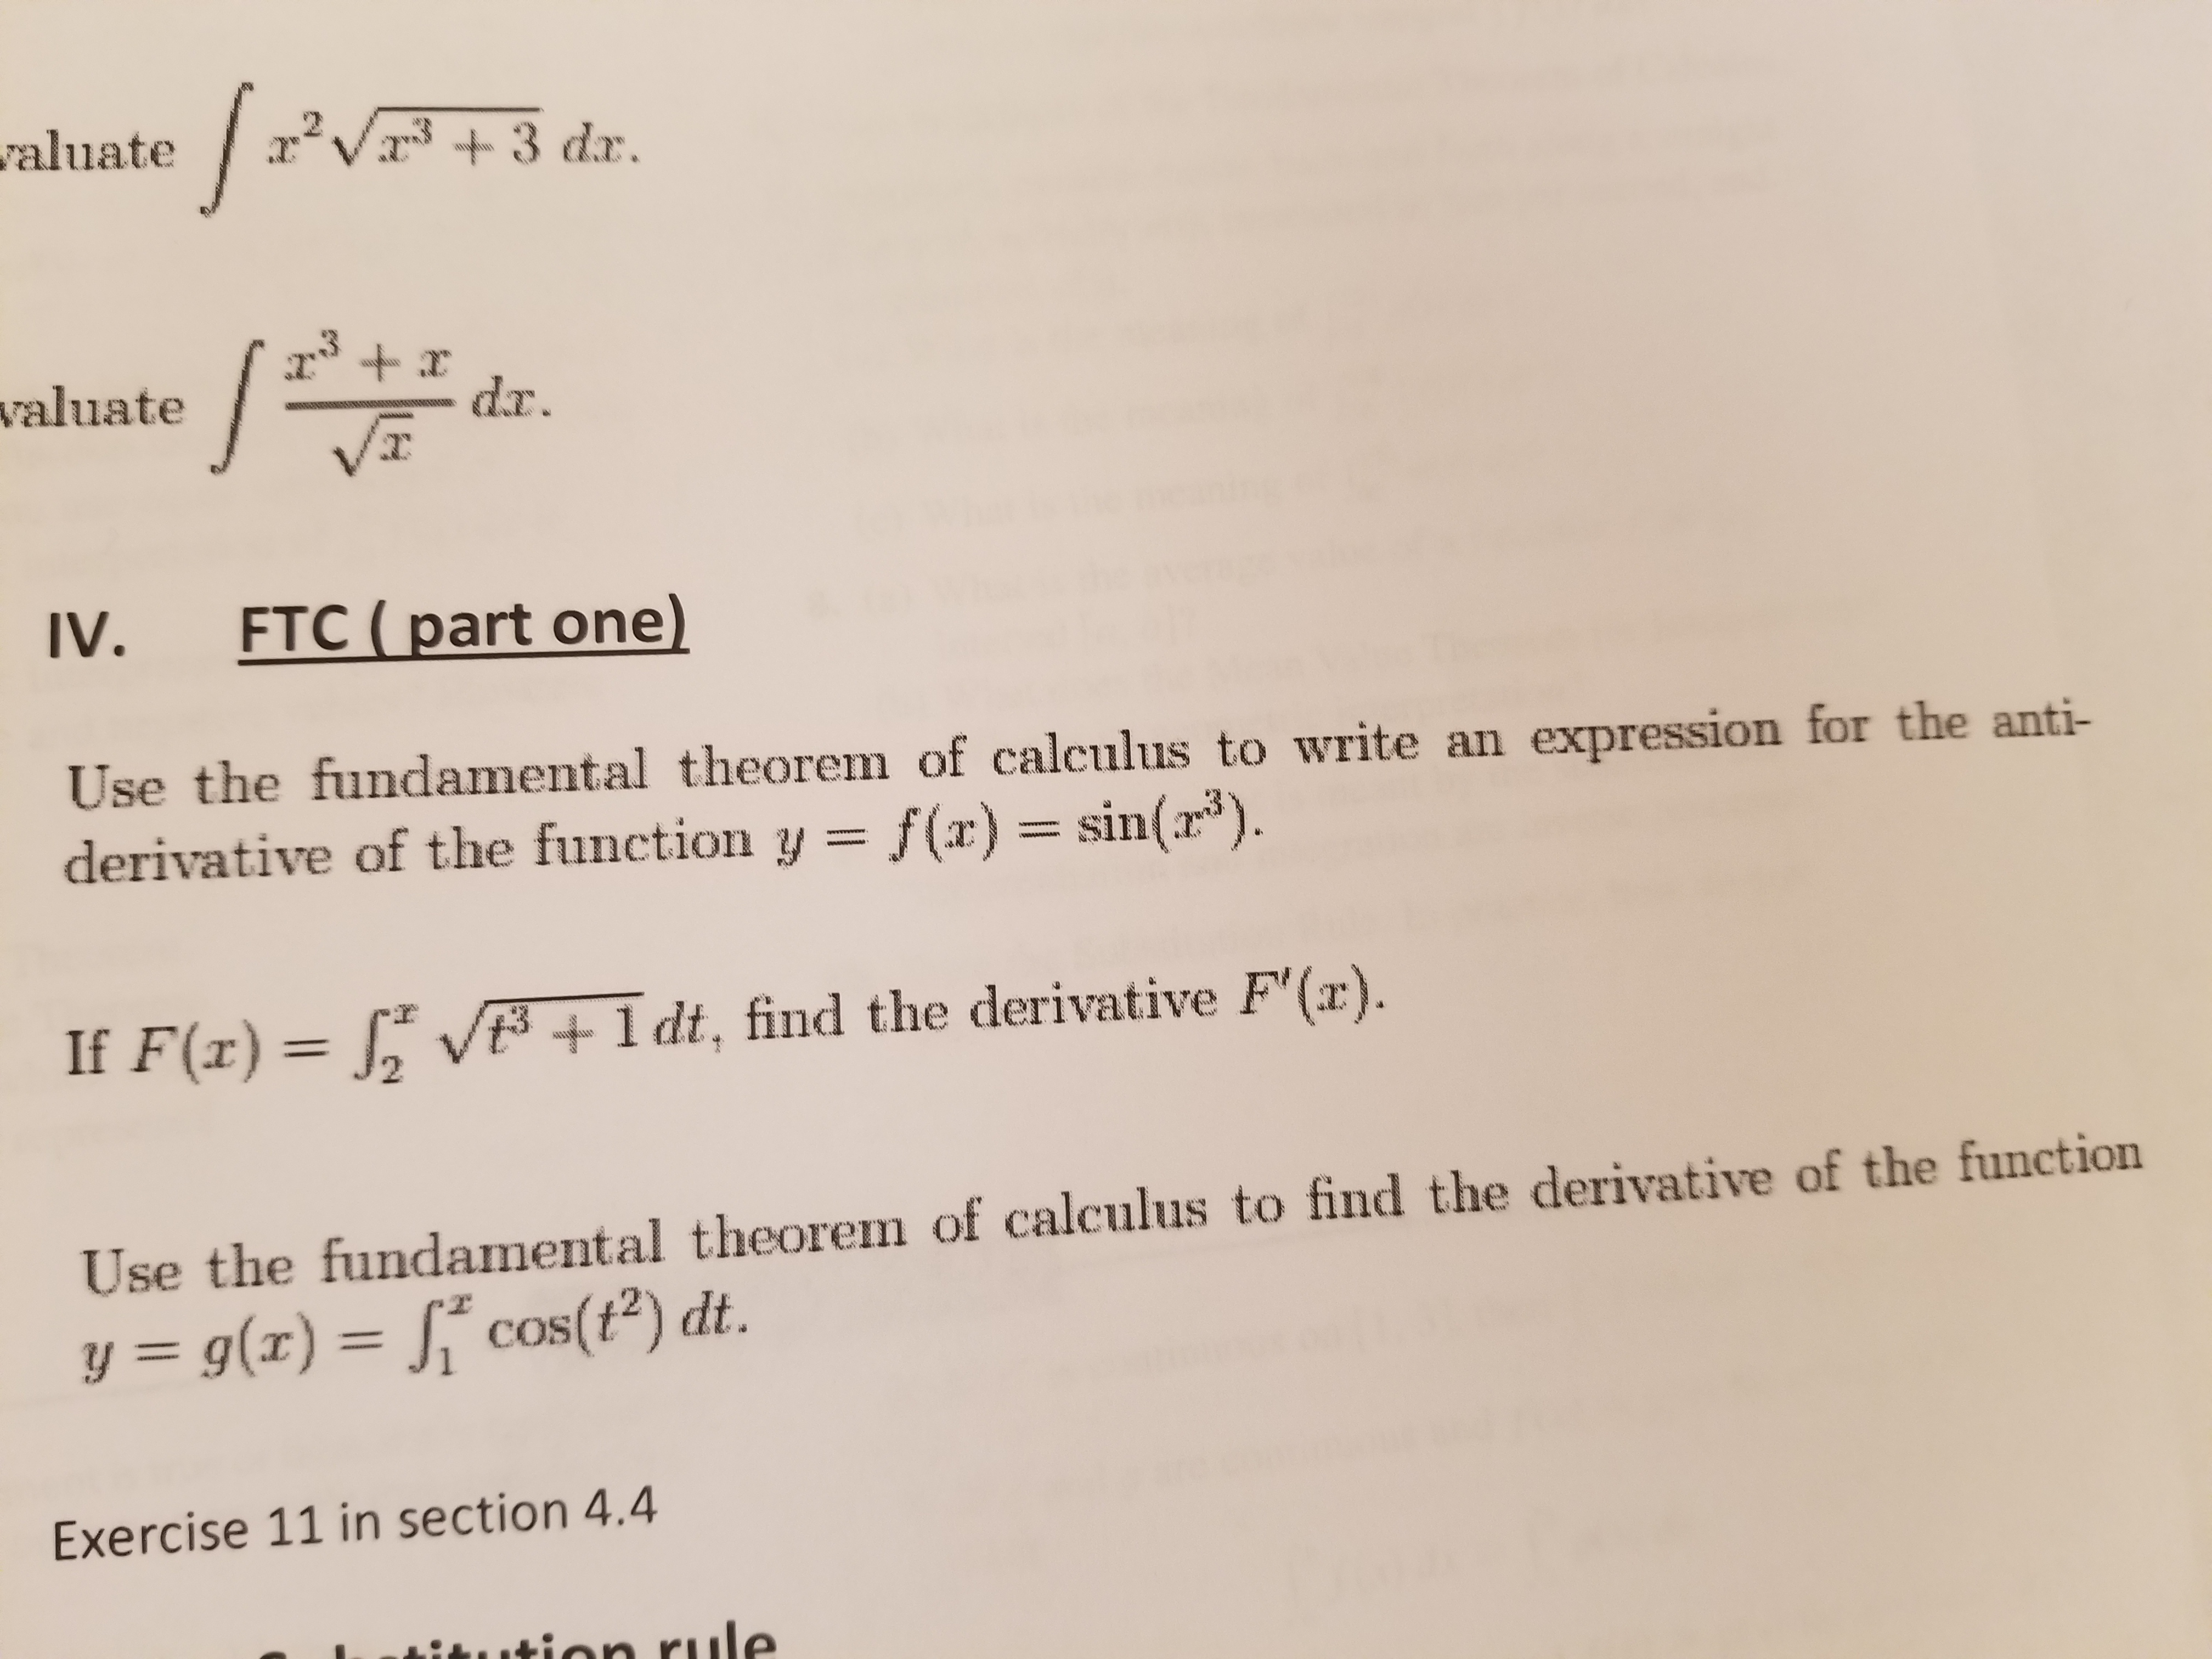 "abuate3 dar. valuate VT IV. FTC (part one) Use the fundamental theorem of calculus to write an expression for the anti- derivative of the function y = f(x) = sin(13). If F(x) 12 V t +ldt, find the derivative F'(x). Use the fundamental theorem of calculus to find the derivative of the function y = g(x)-j"" cos(t2) dt. Exercise 11 in section 4.4"